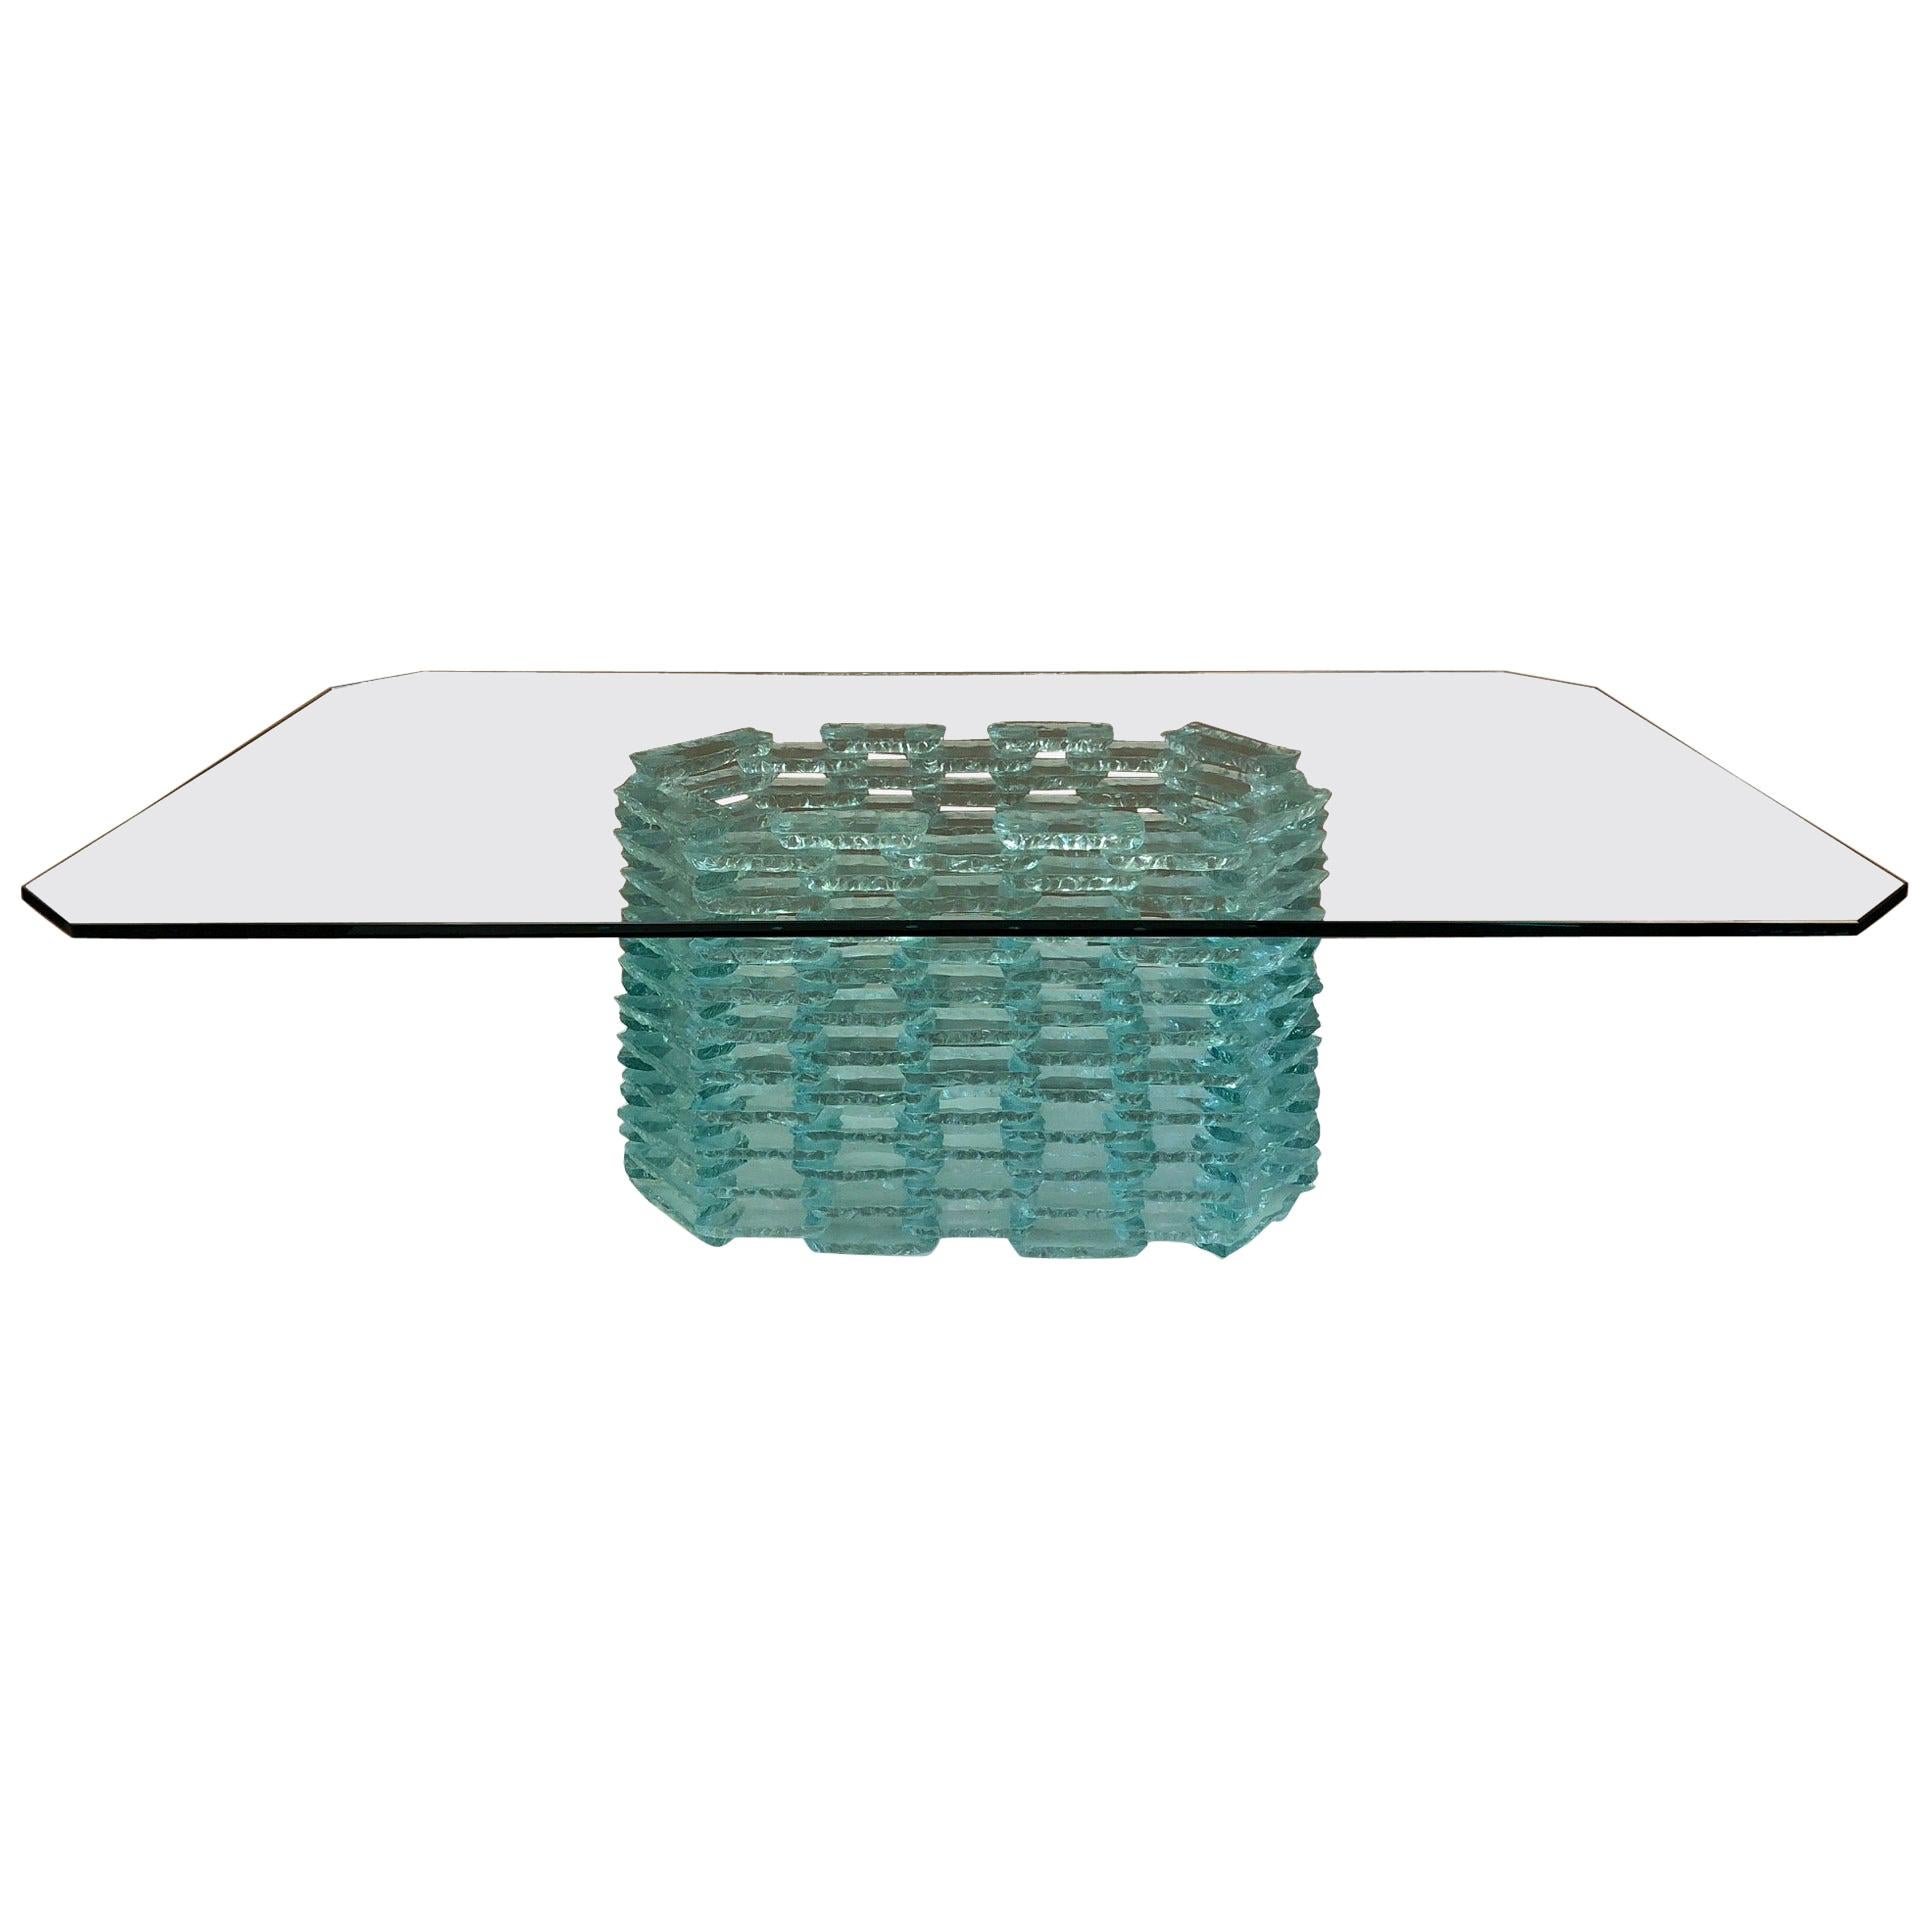 Danny Lane Style Tinted Glass Coffee Table